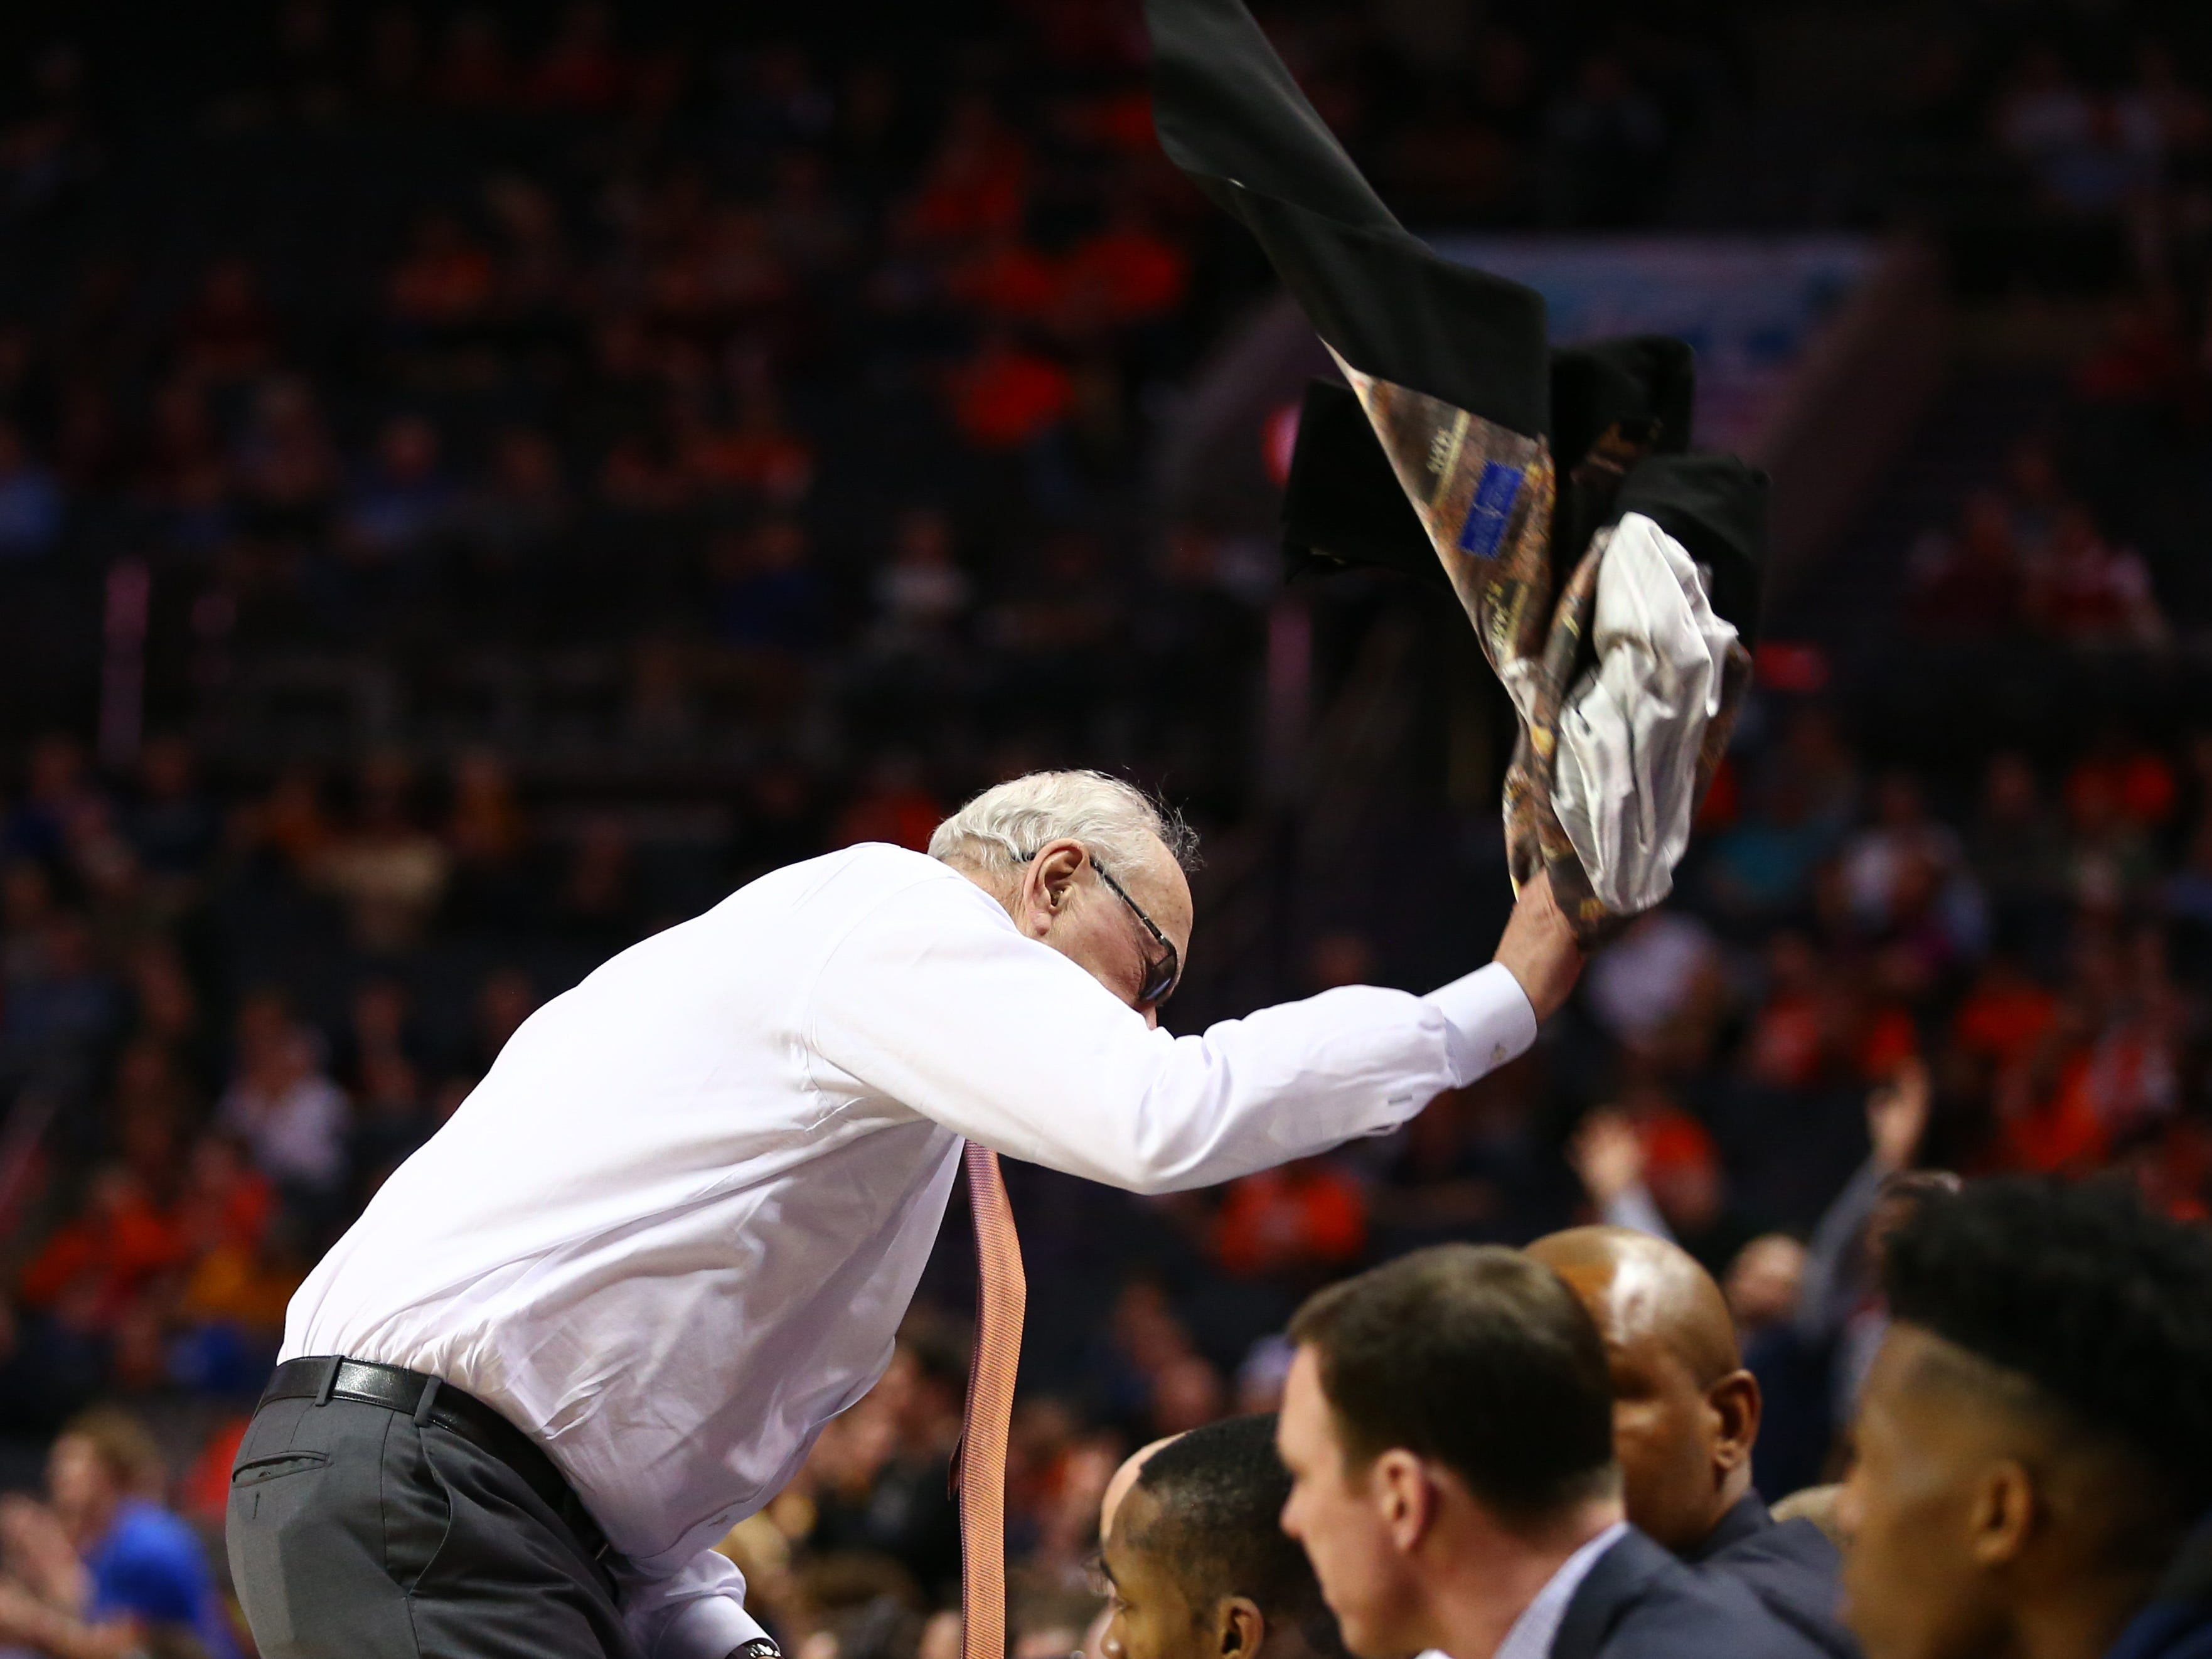 Syracuse head coach Jim Boeheim throws his jacket during the second half of Wednesday's win over Pittsburgh.